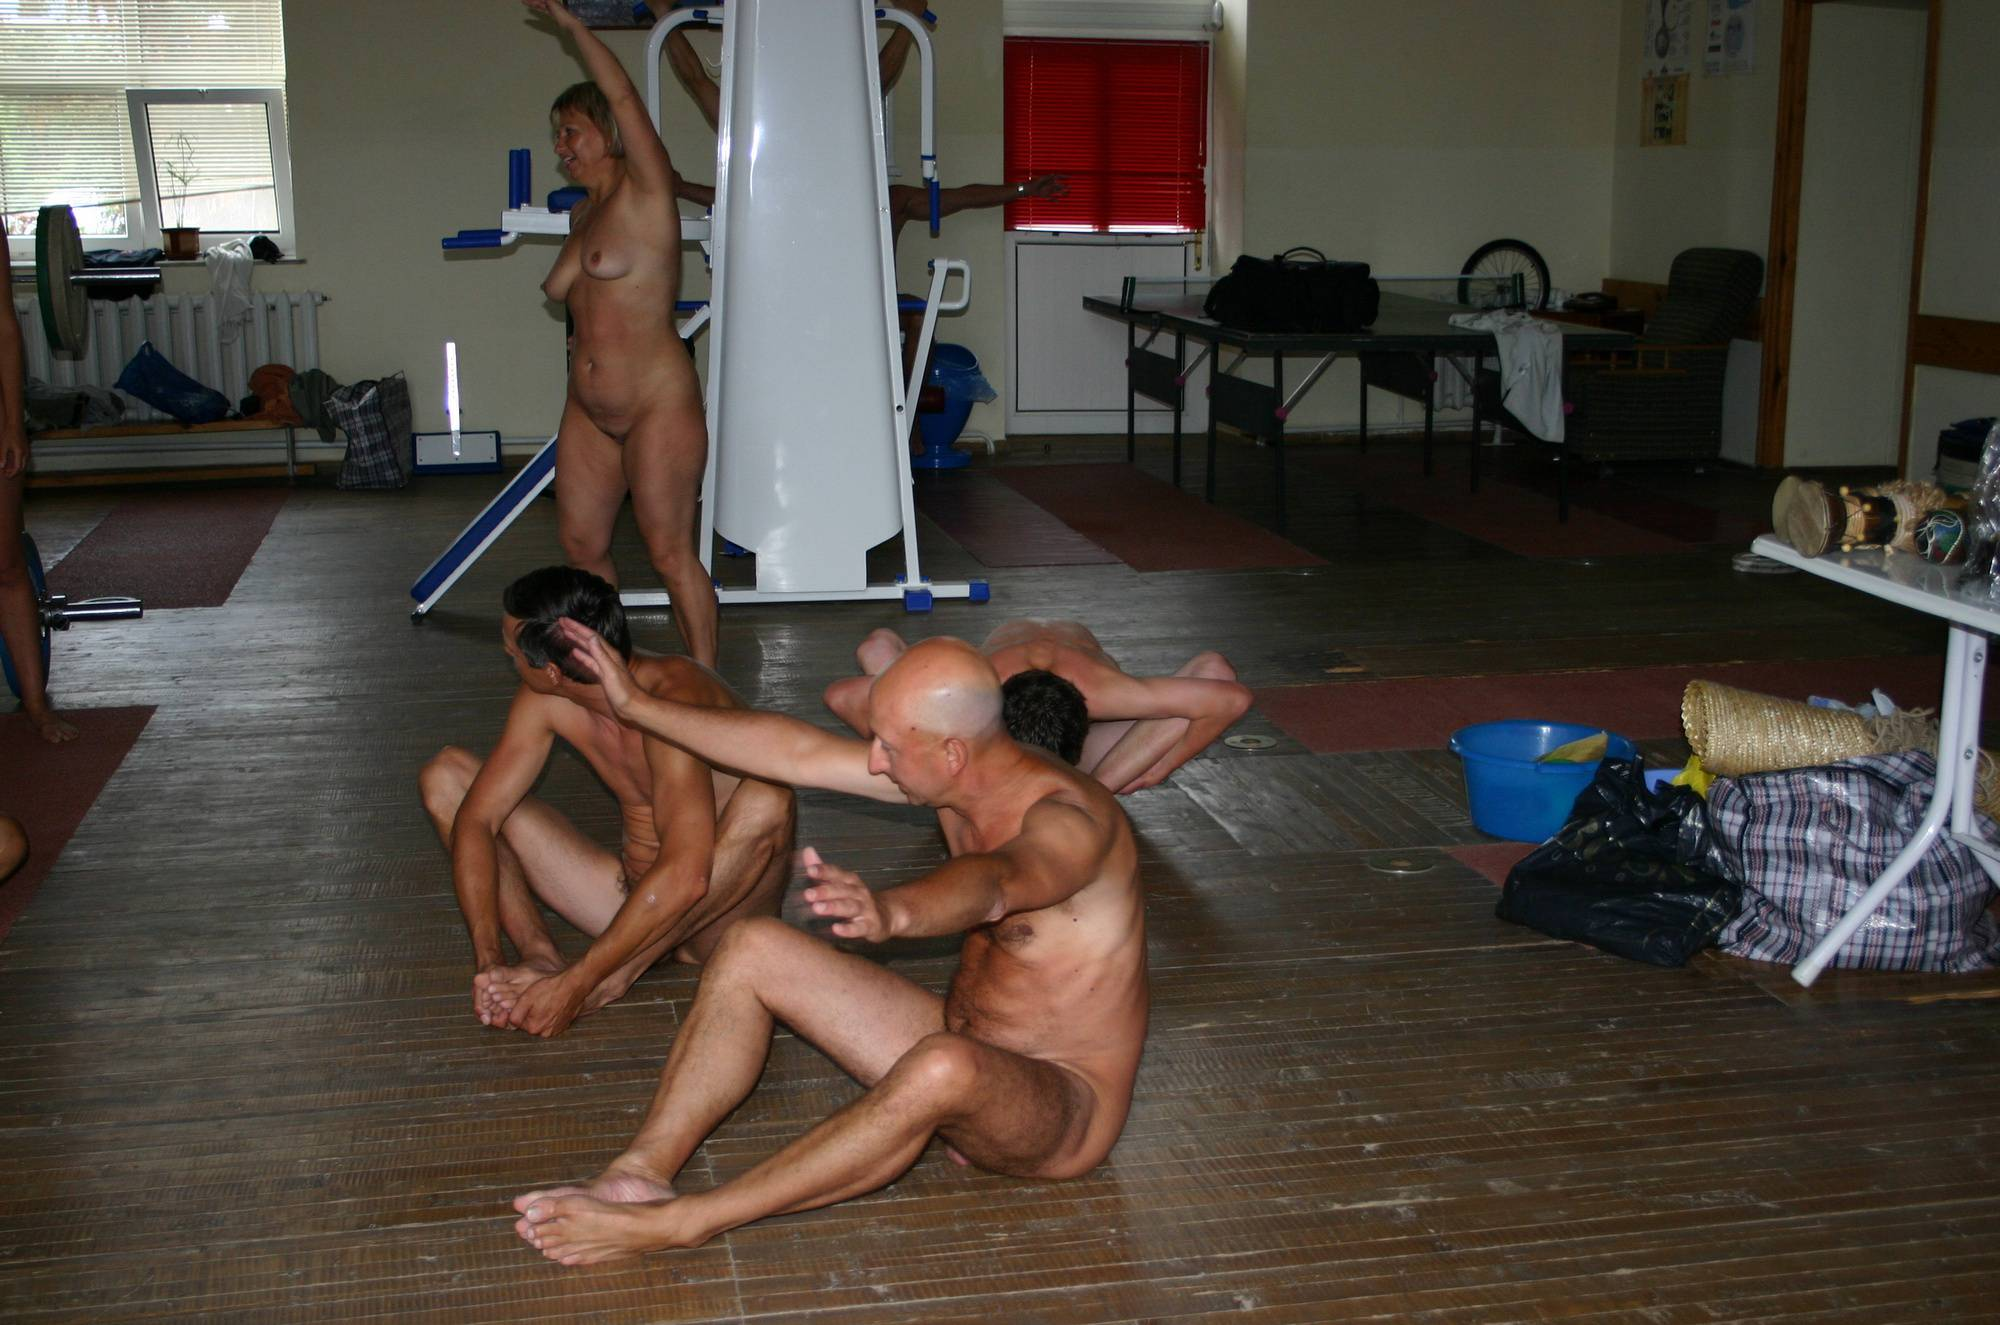 Nudist Pictures Family Gym Nudist Stretch - 1